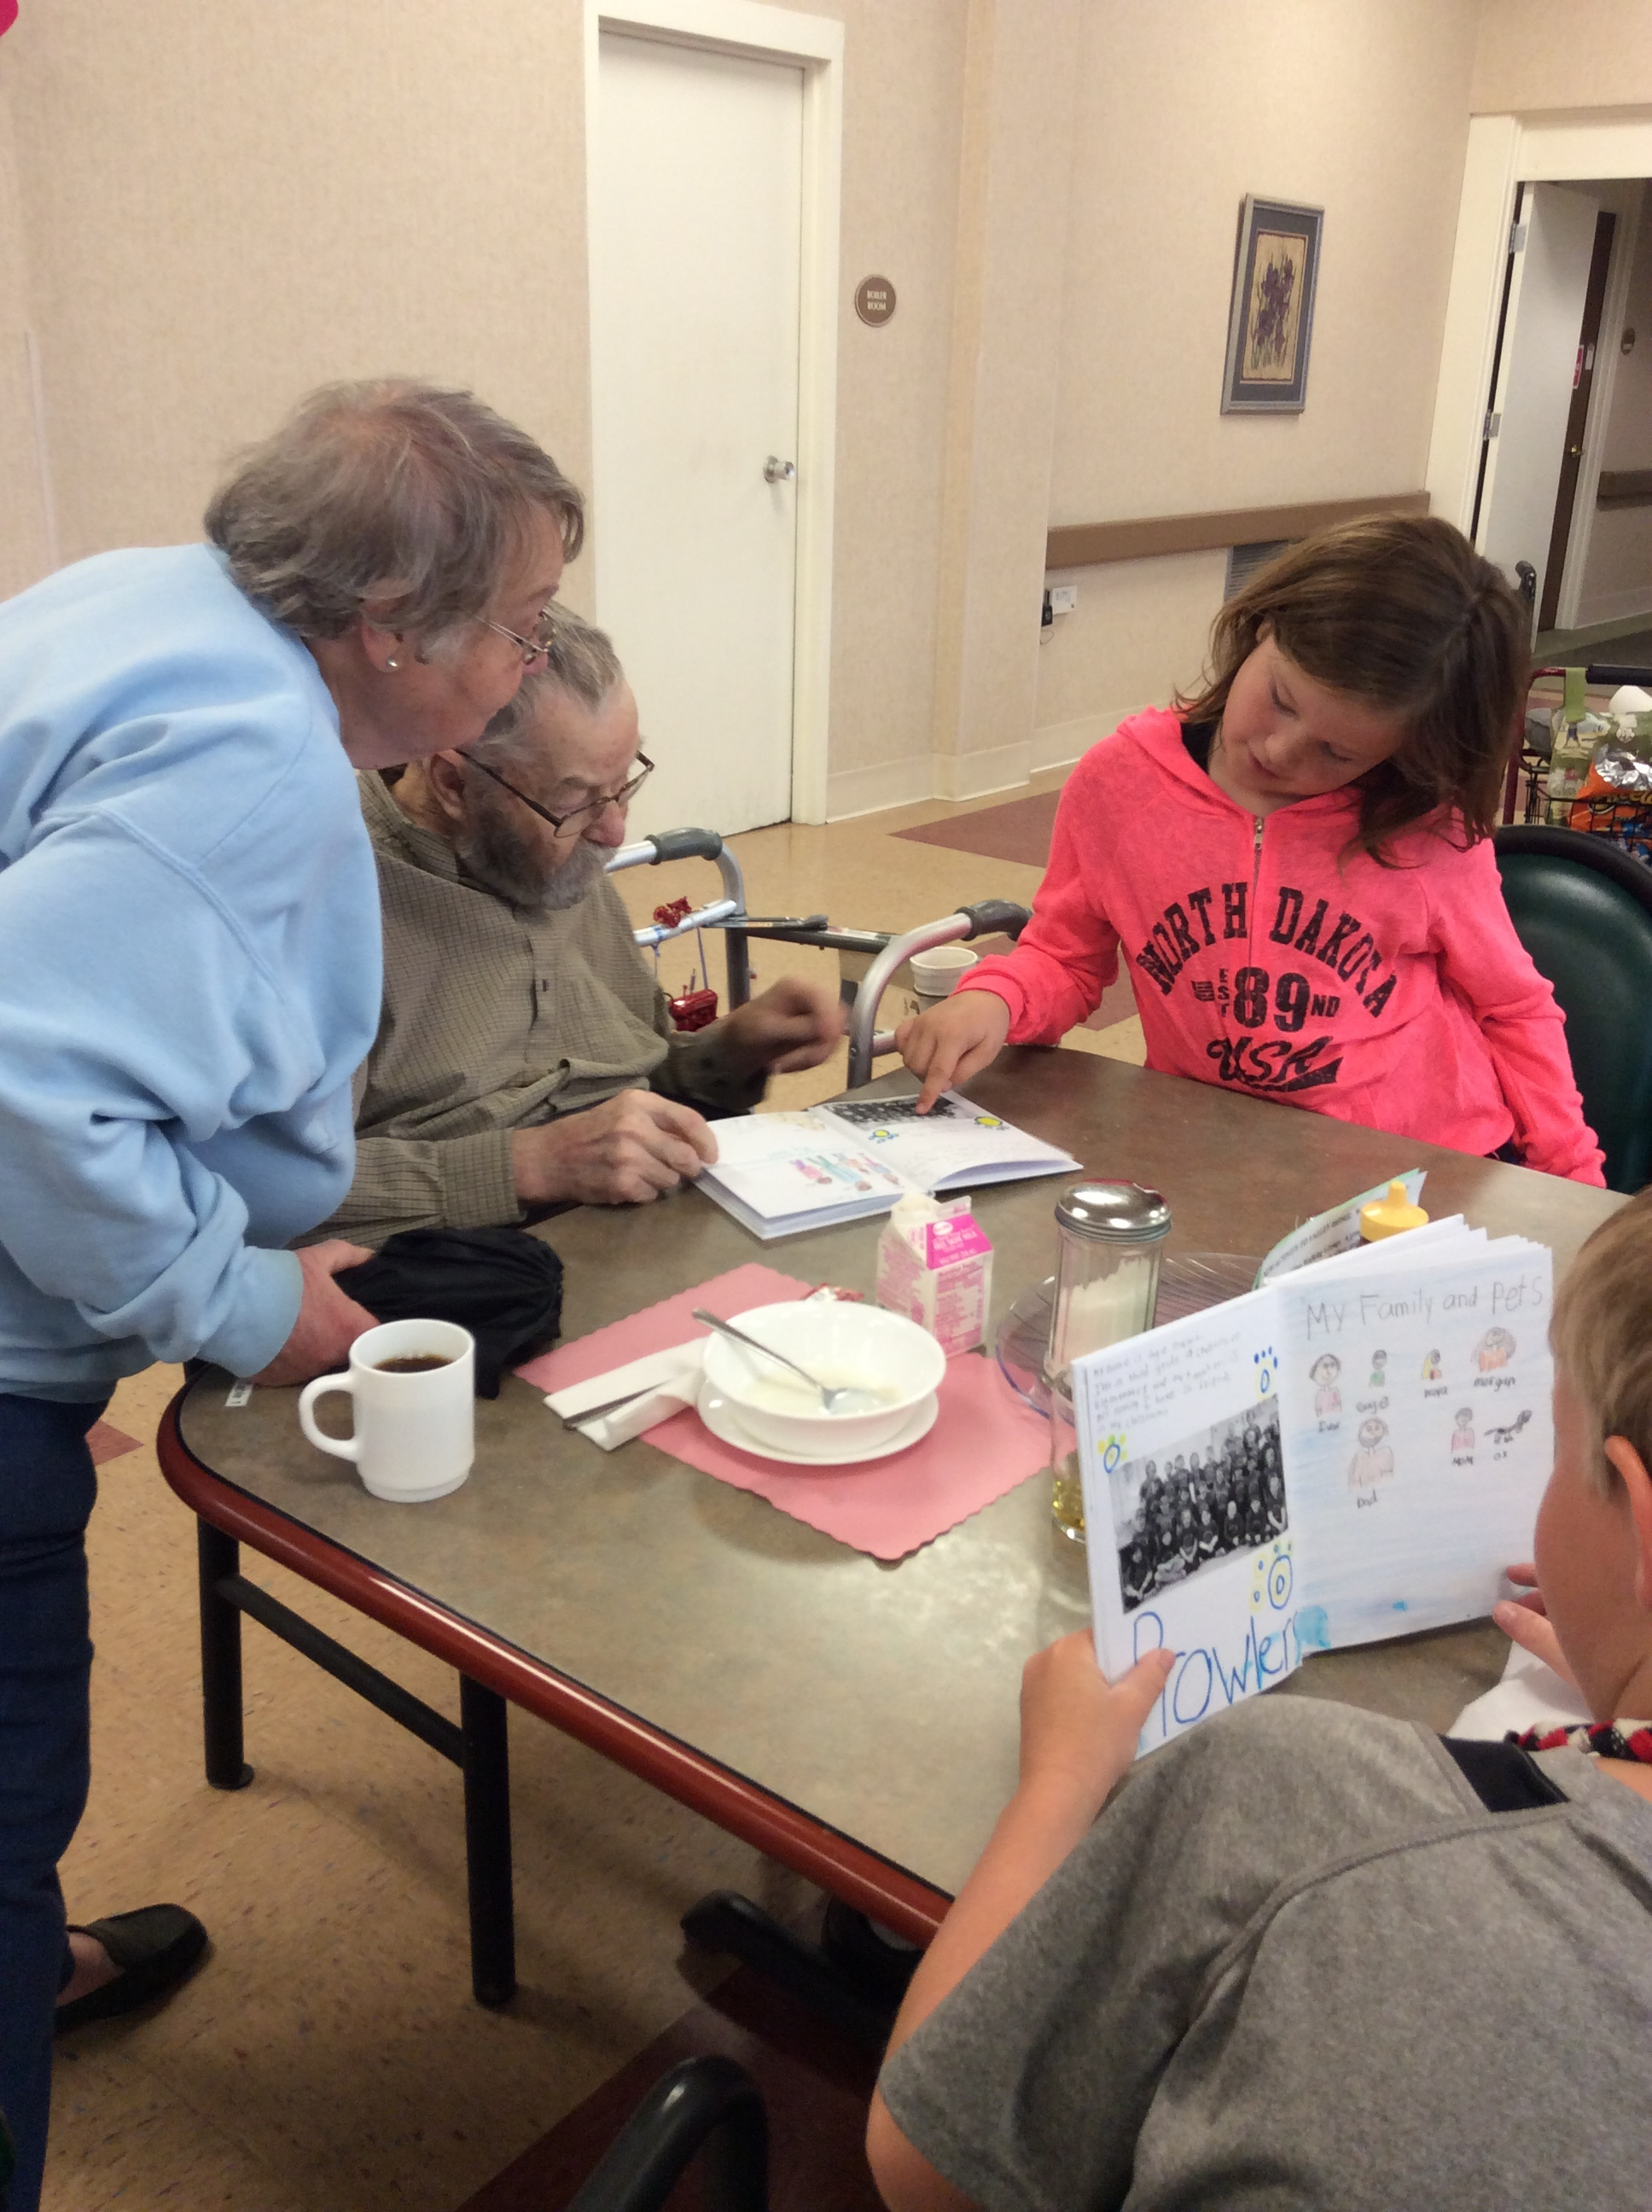 socialization opportunities to plan special events attract volunteers assist residents maintaining the ability to pursue their own individual interests and hobbies